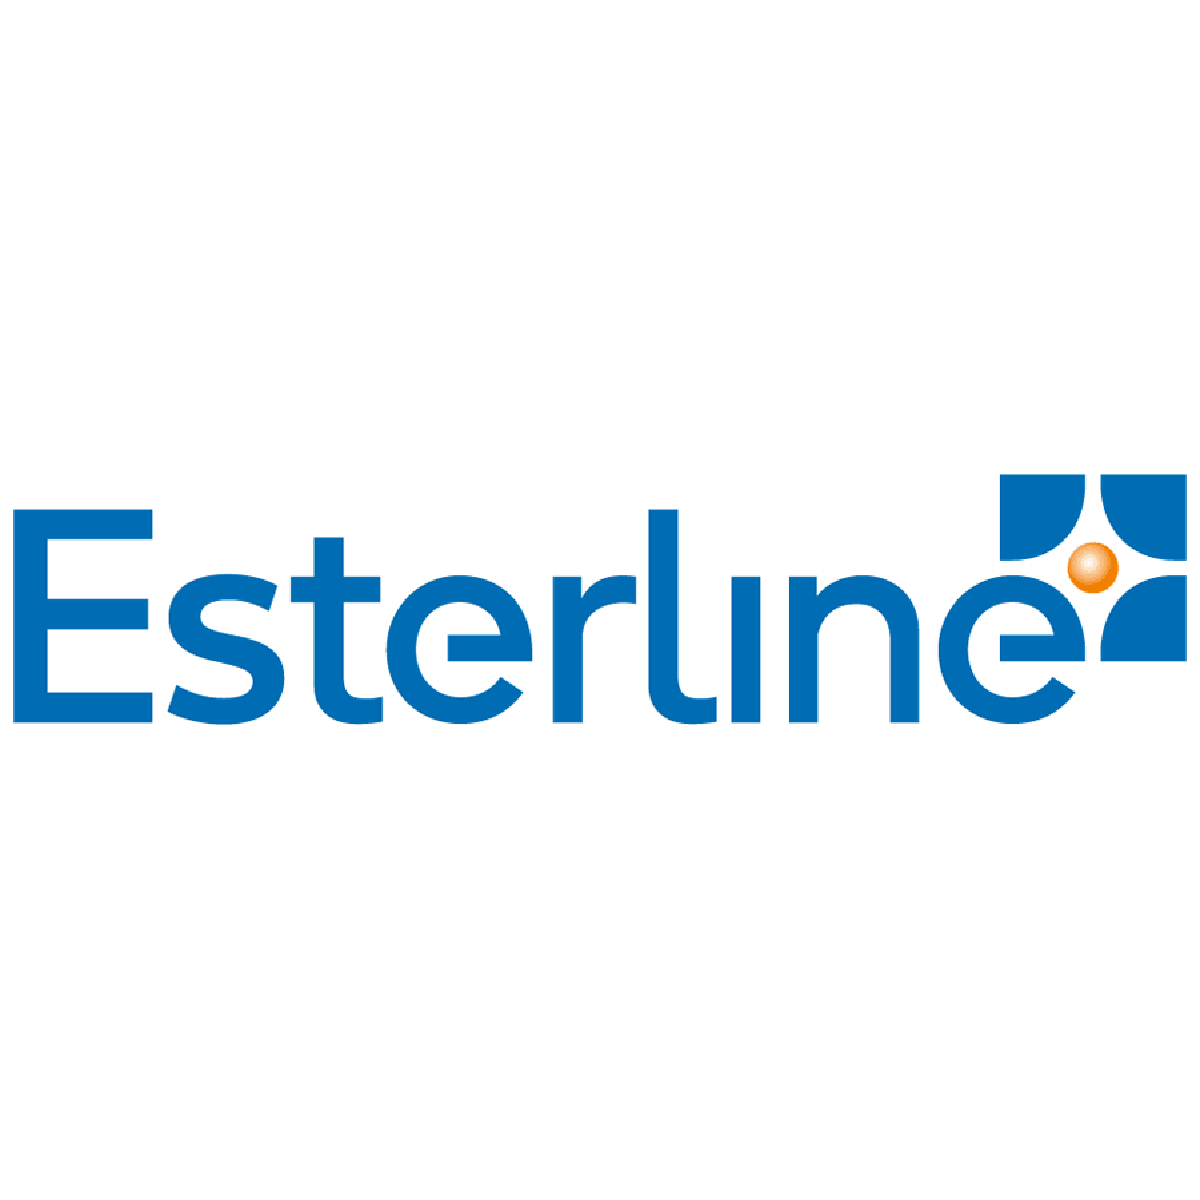 esterline-vector-logo